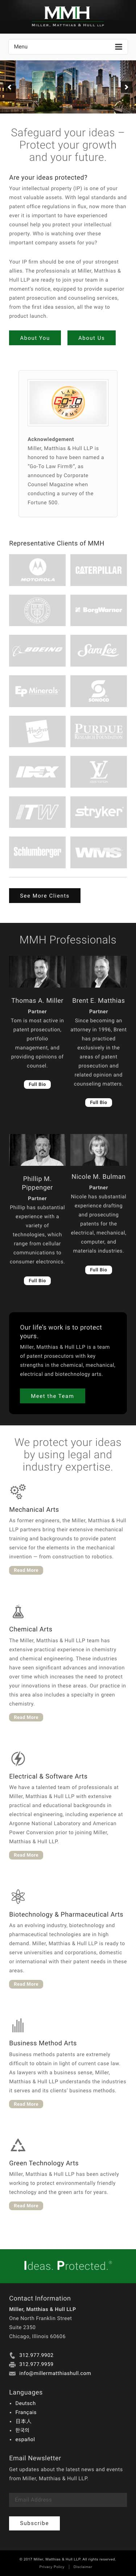 Miller Matthias & Hull - New Homepage - iPhone View